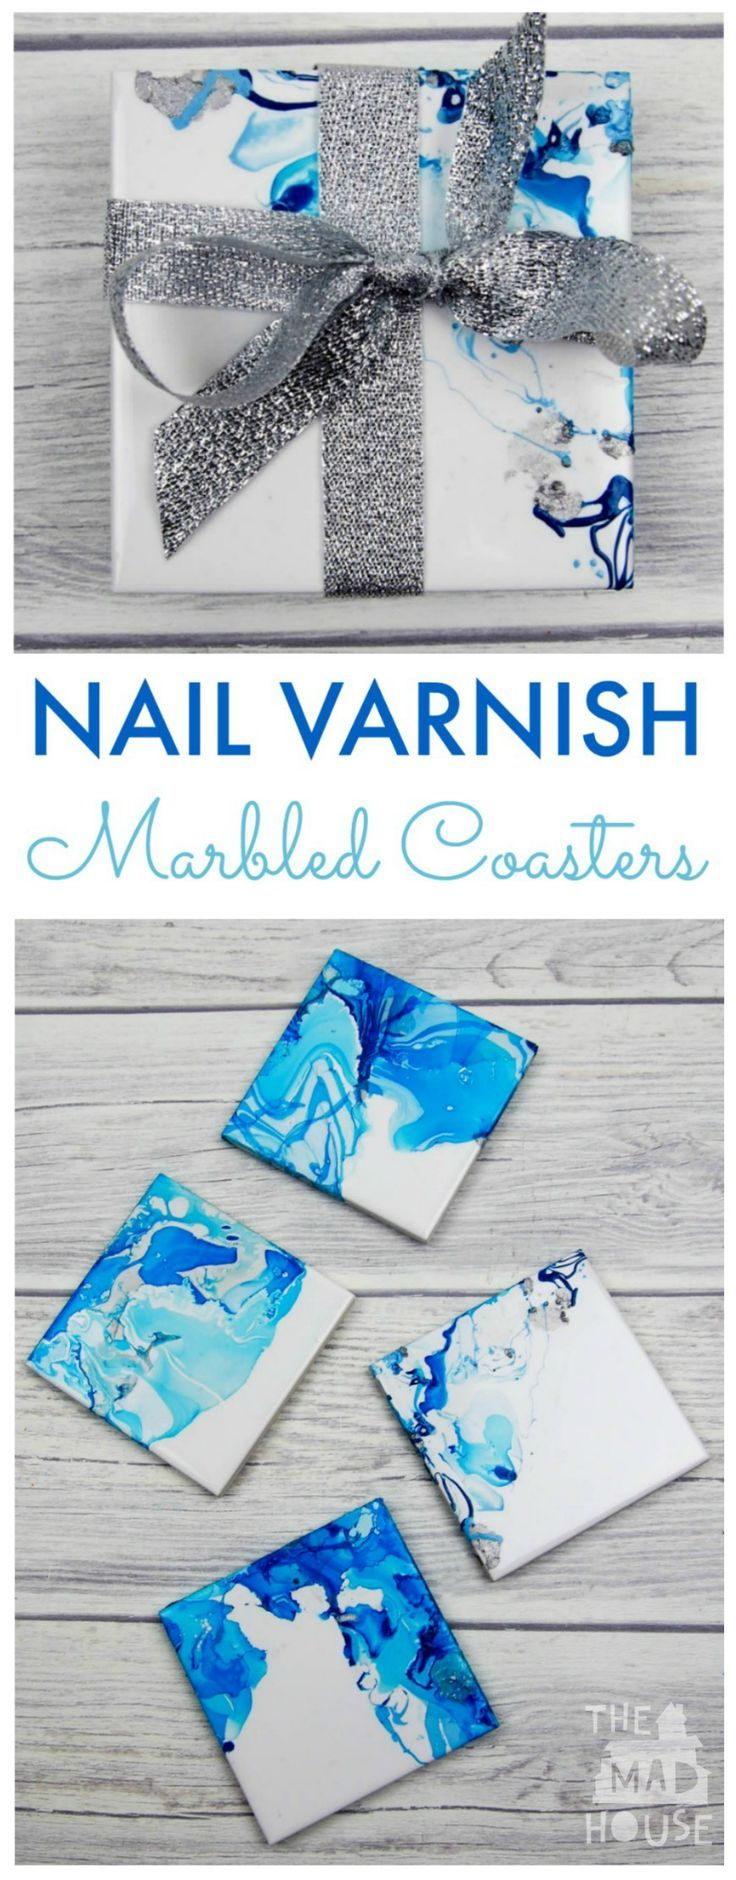 How to make Nail Varnish Marbled Coasters. These beautiful marbled coasters are beautiful as so simple to make.  A great homemade gift and DIY craft: